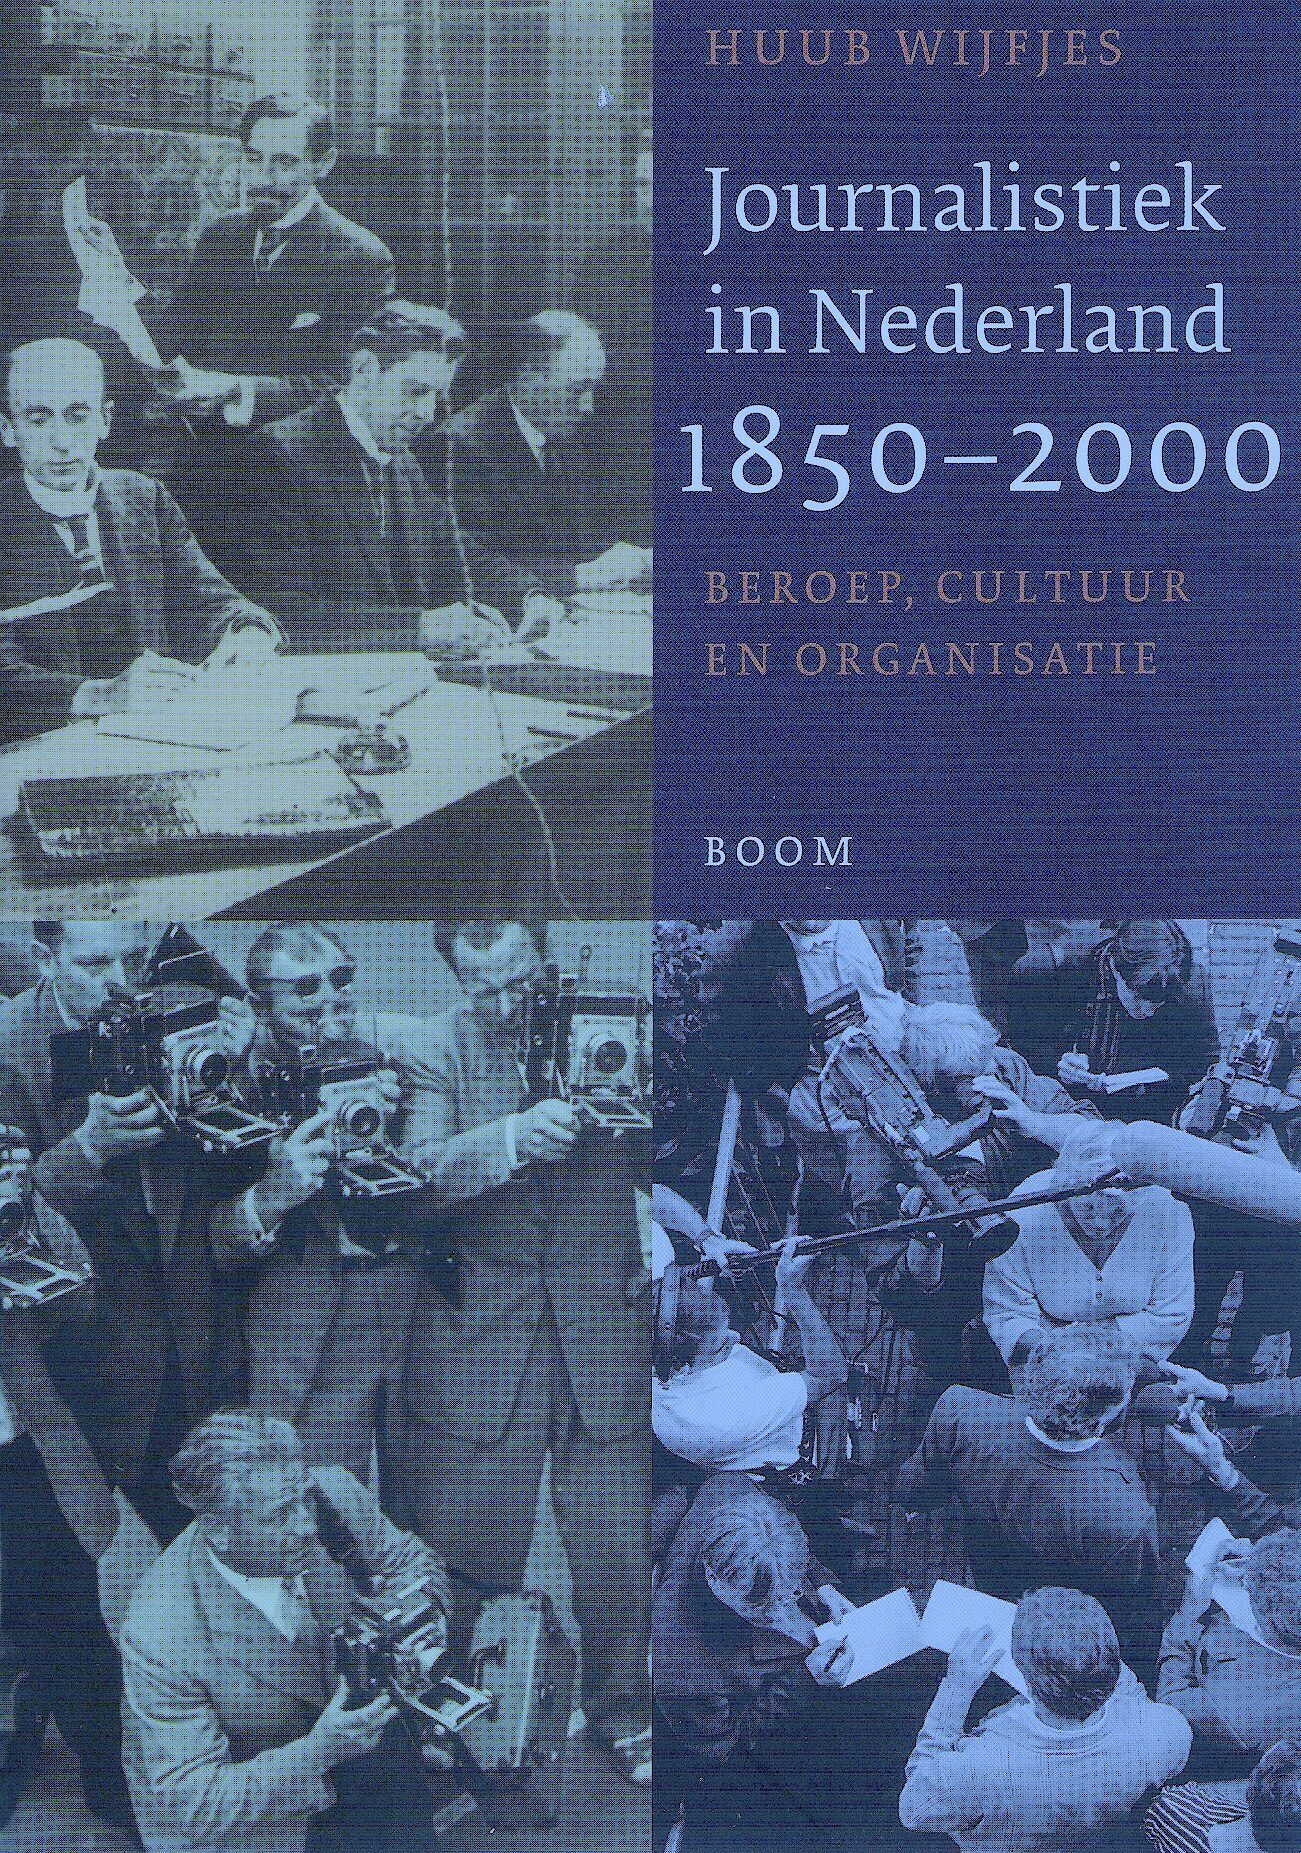 Journalistiek in Nederland 1850-2000